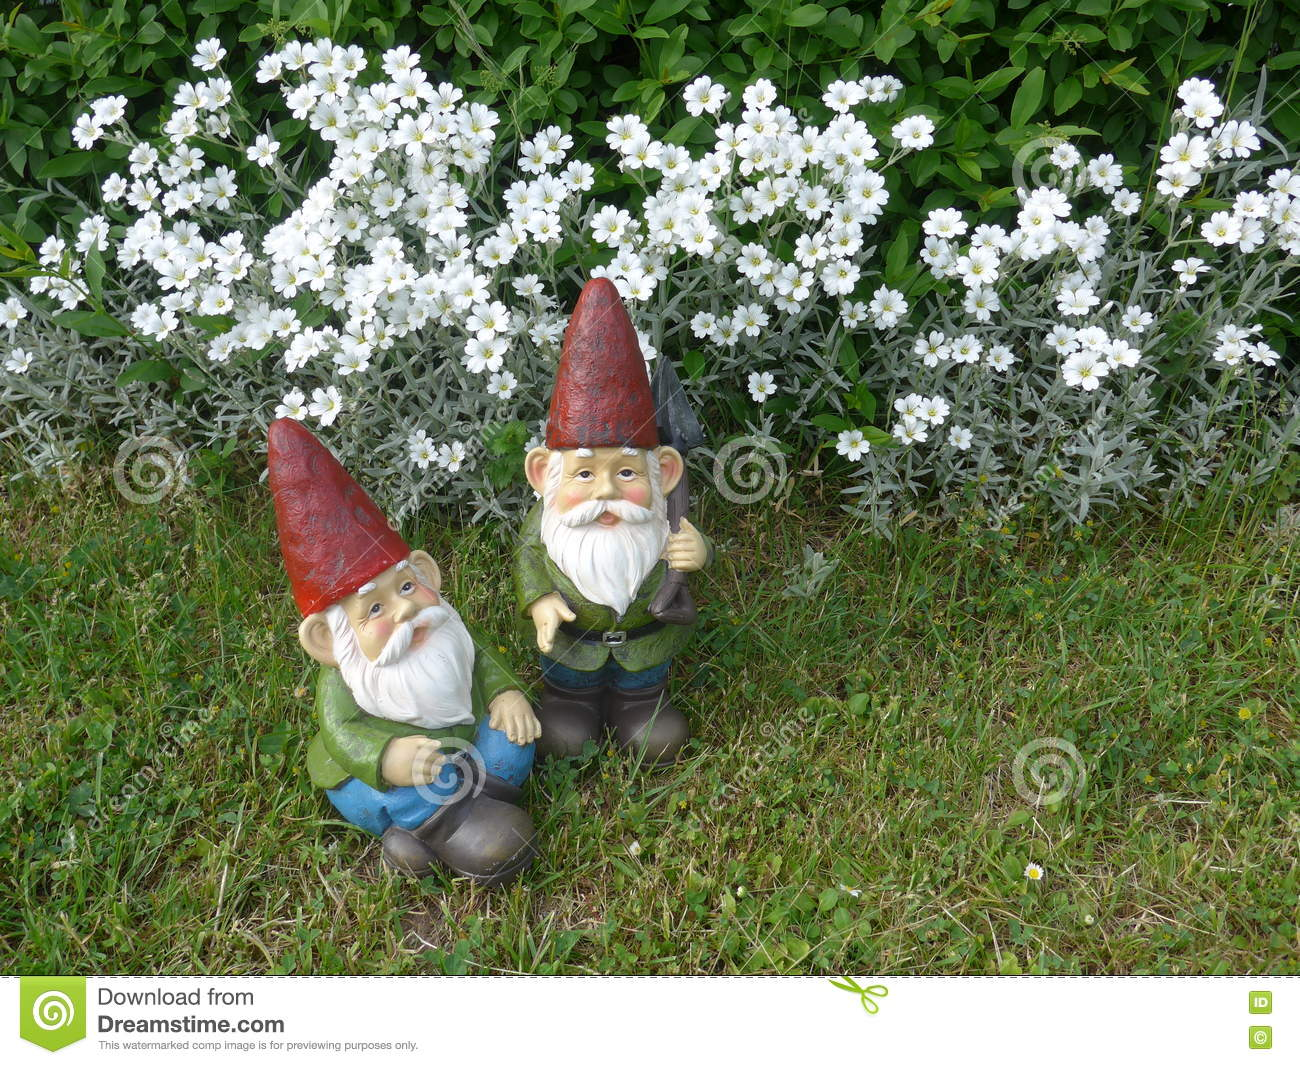 download two funny garden gnomes with red hats stock photo image of agriculture beard - Funny Garden Gnomes